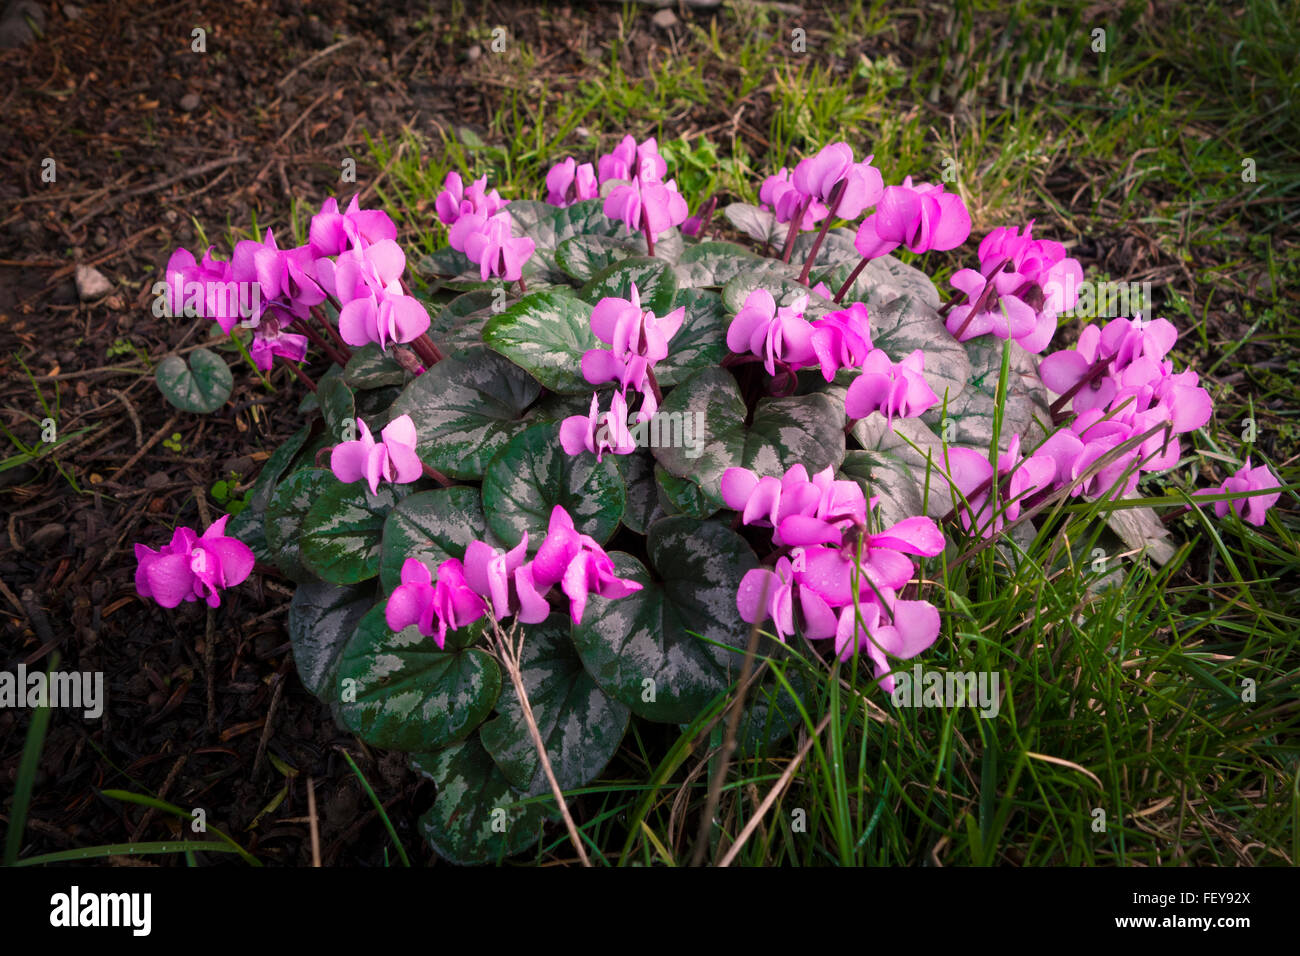 A nice clump of Cyclamen flowers - Stock Image